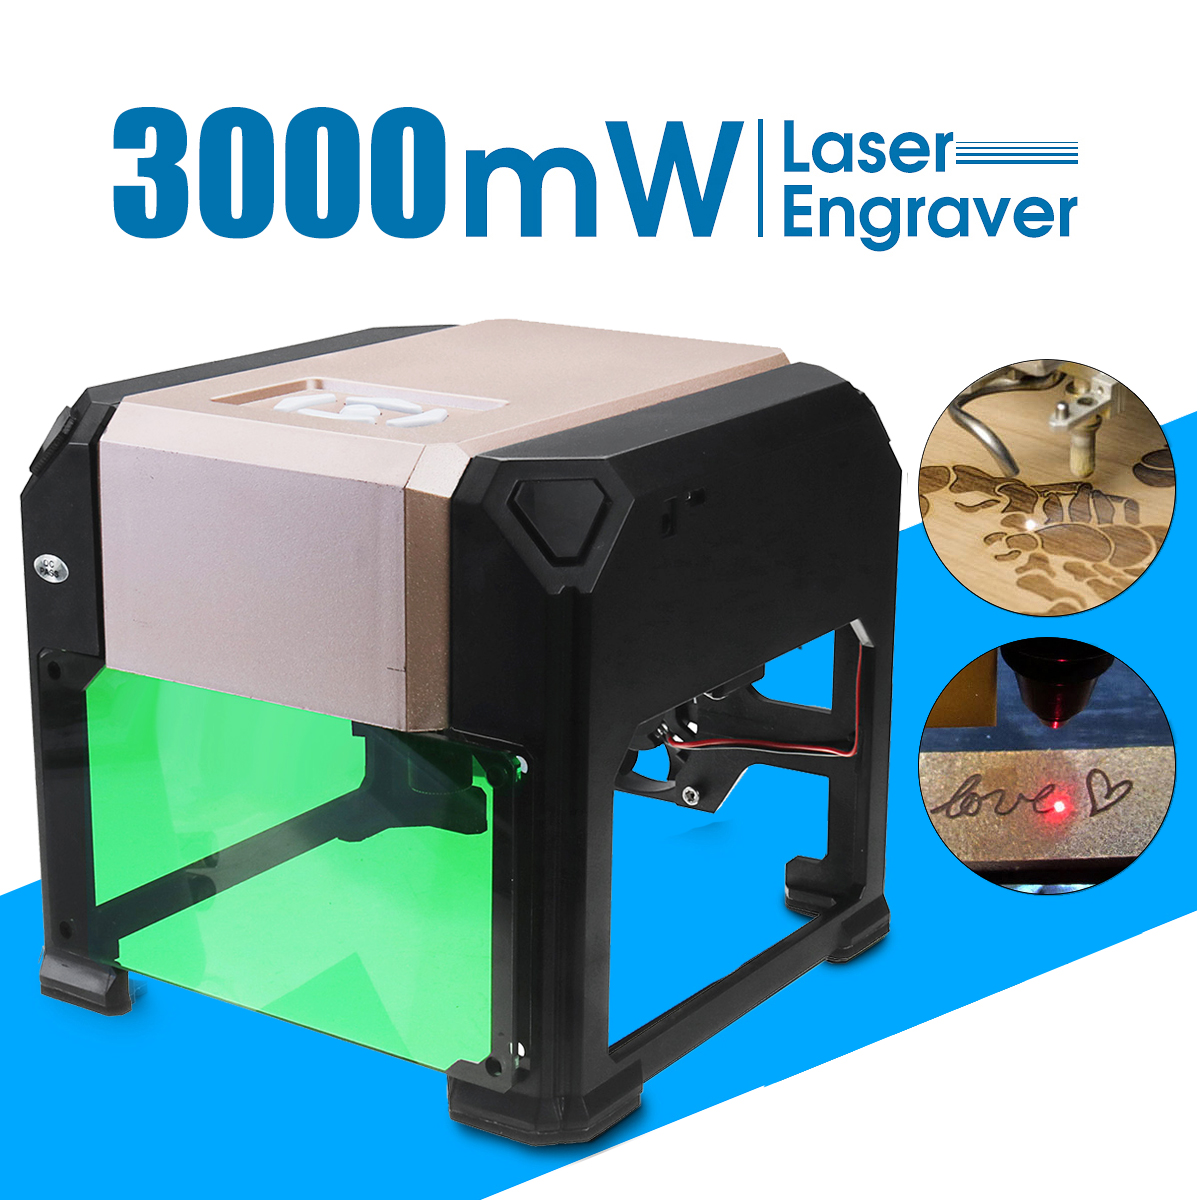 3000mW USB Laser Engraver Printer Cutter Carver DIY Logo Mark Laser Cut Engraving Machine CNC Laser Carving Machine Home Use